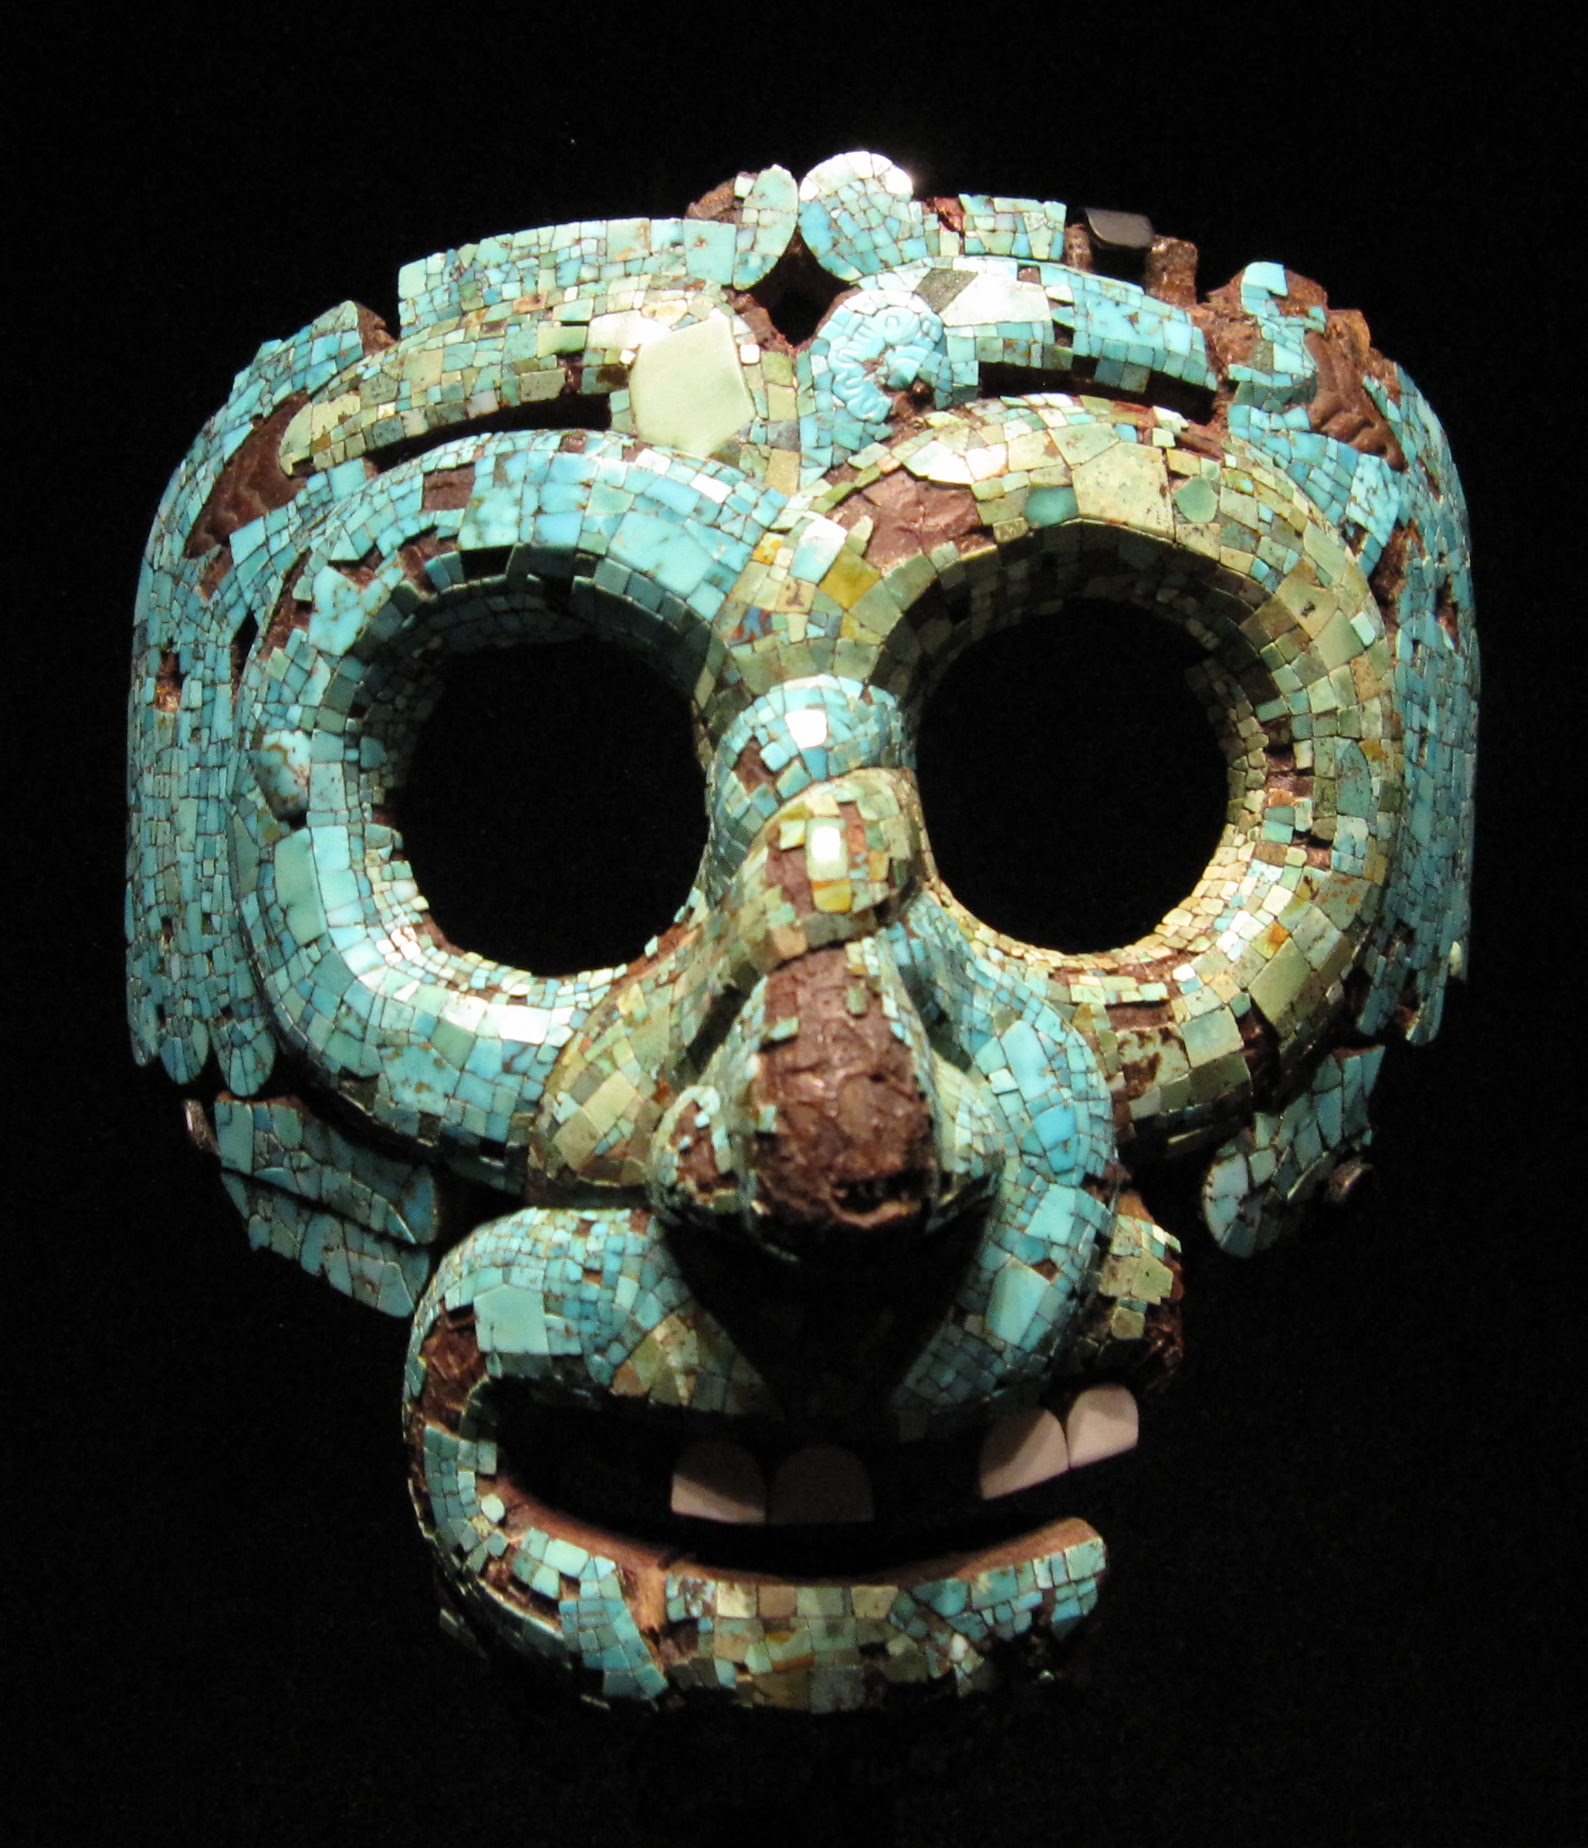 http://upload.wikimedia.org/wikipedia/commons/f/f6/British_Museum_Mixtec.jpg